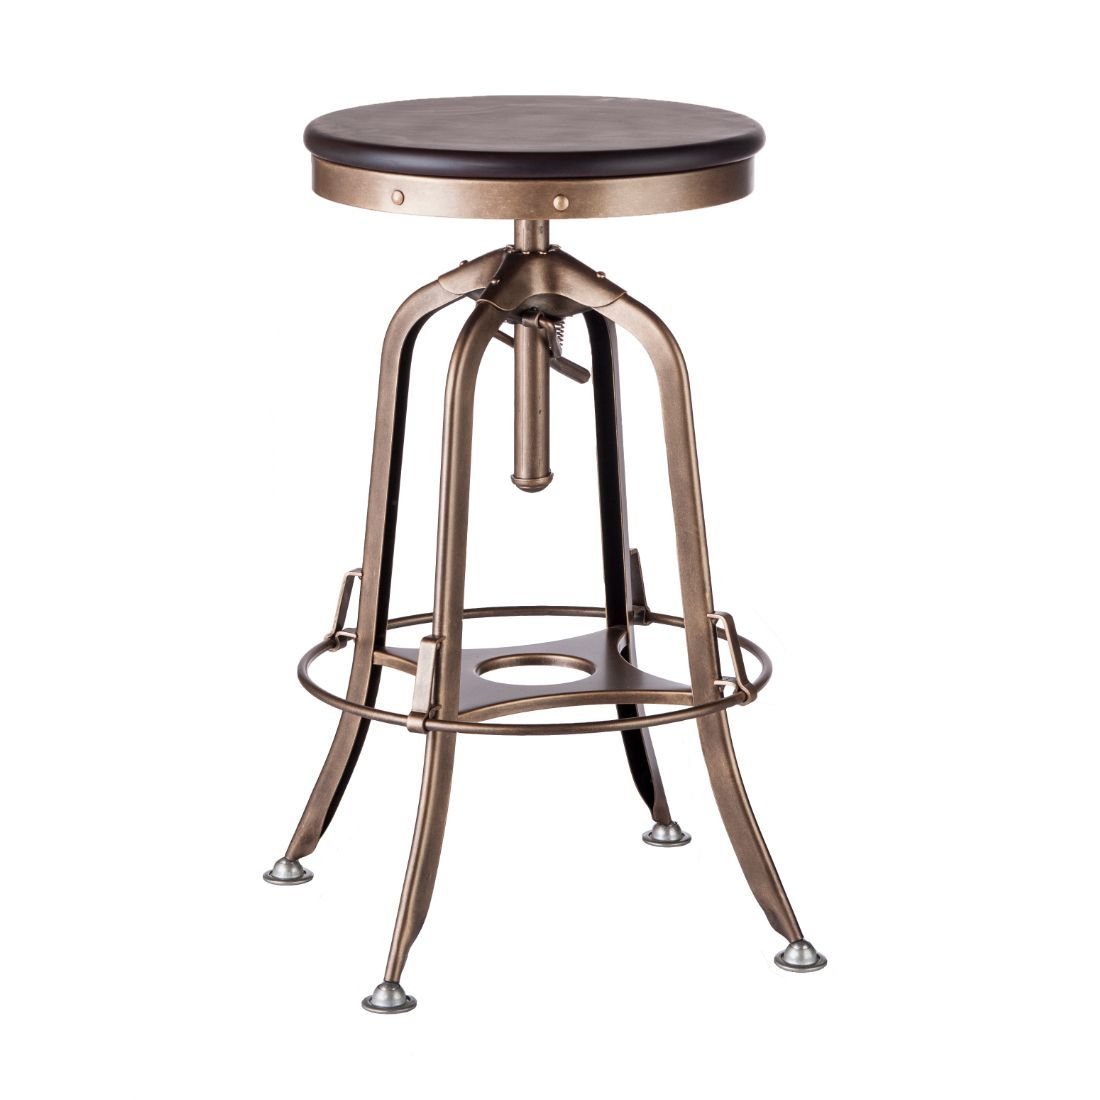 Industrial Iron Bar Stool With Wood Top French Brass Iron Bar Stools Bar Stools Vintage Bar Stools